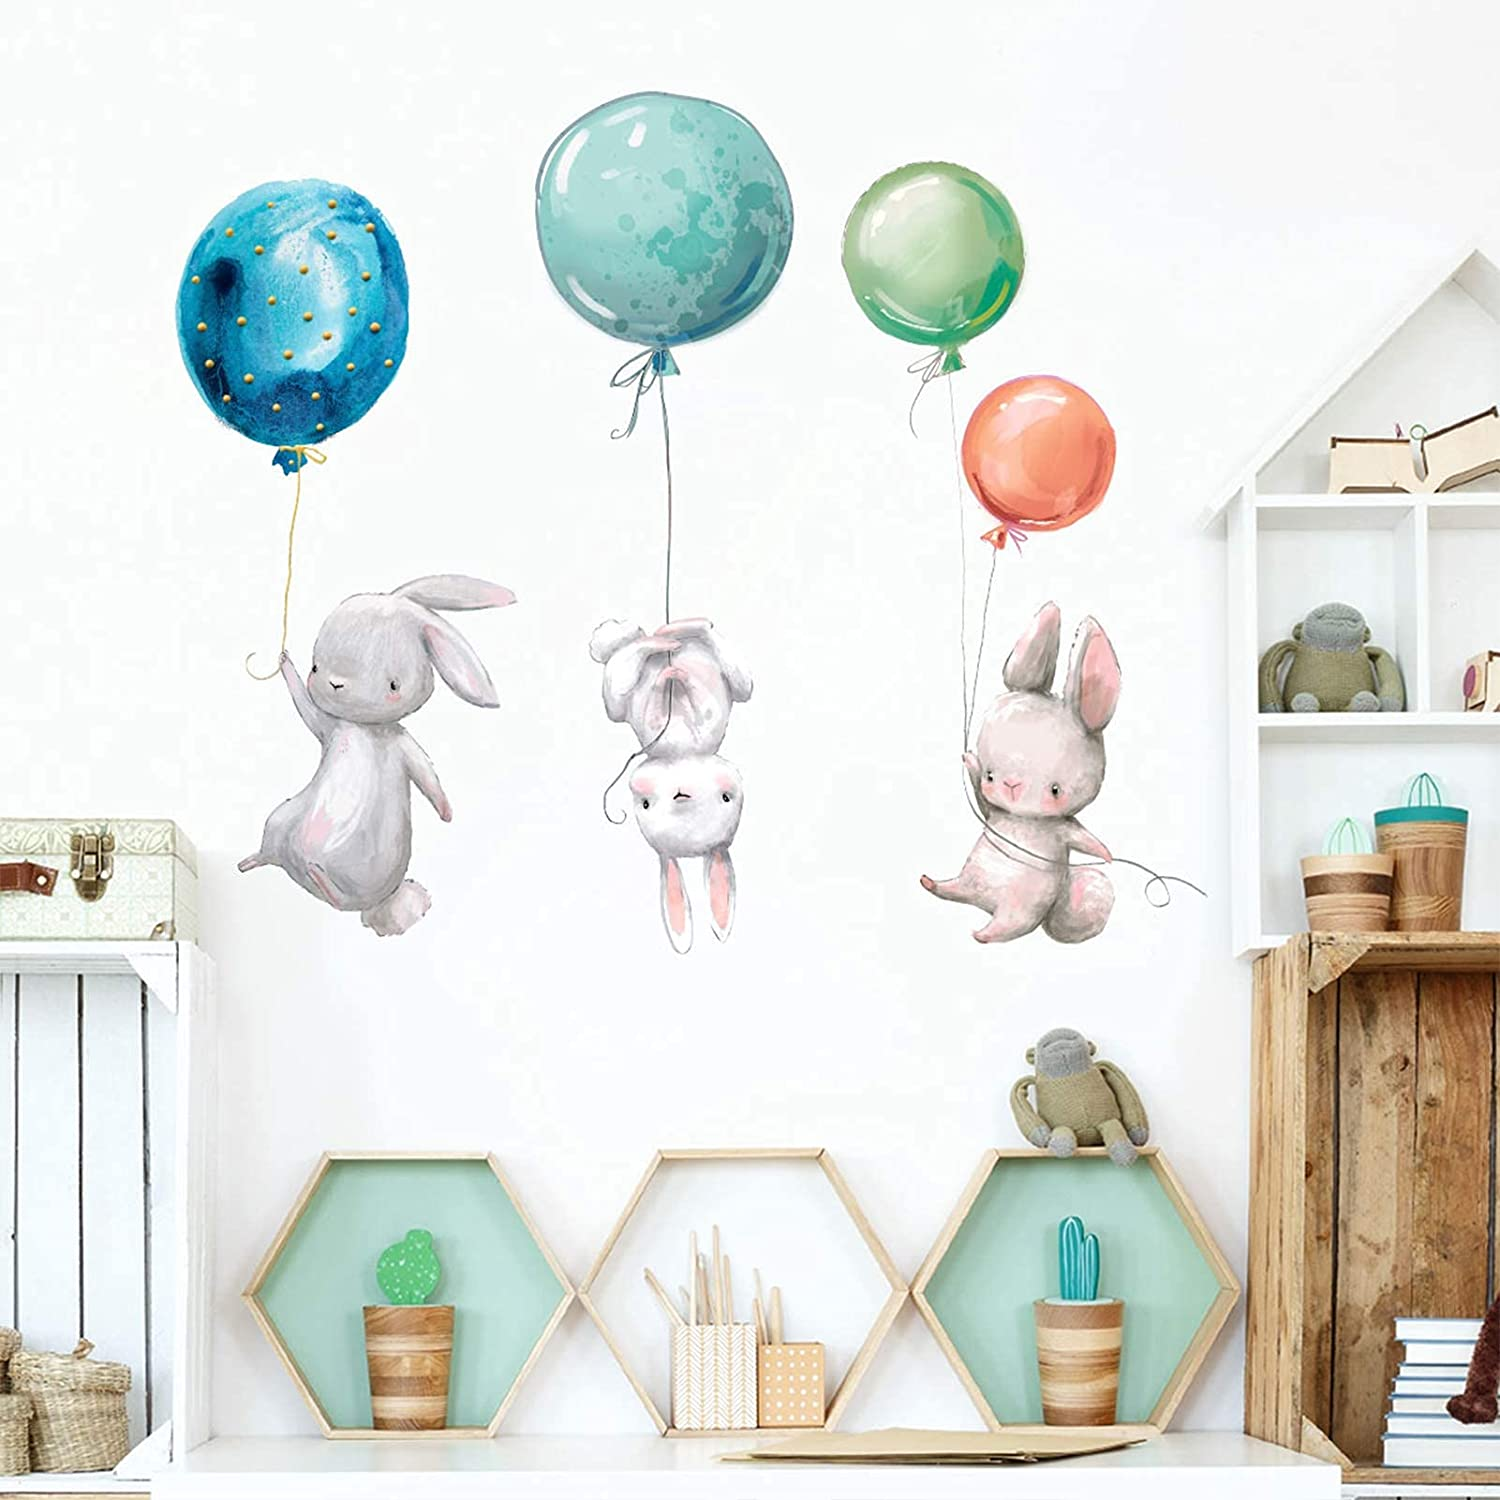 Balloon Flying Animals Wall lowest price Decals Rabbit Lowest price challenge Cute Wal Lovely Bunny